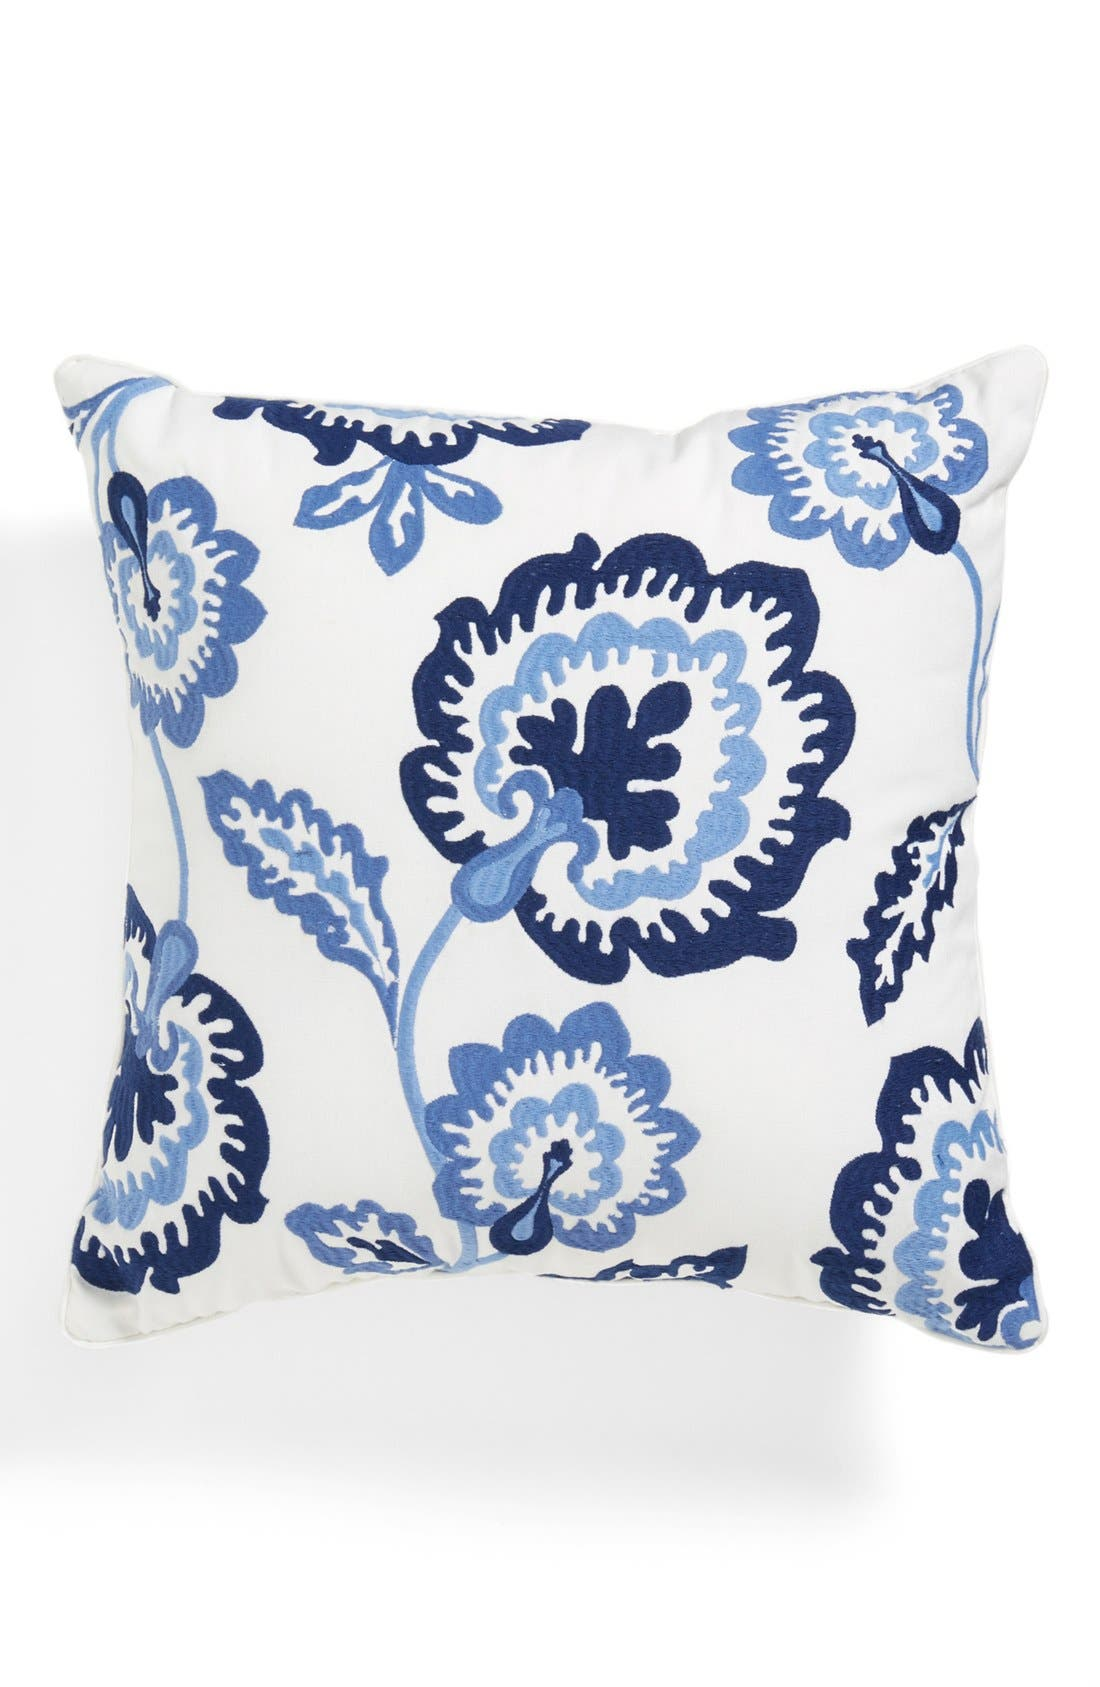 Alternate Image 1 Selected - Nostalgia Home Embroidered Accent Pillow